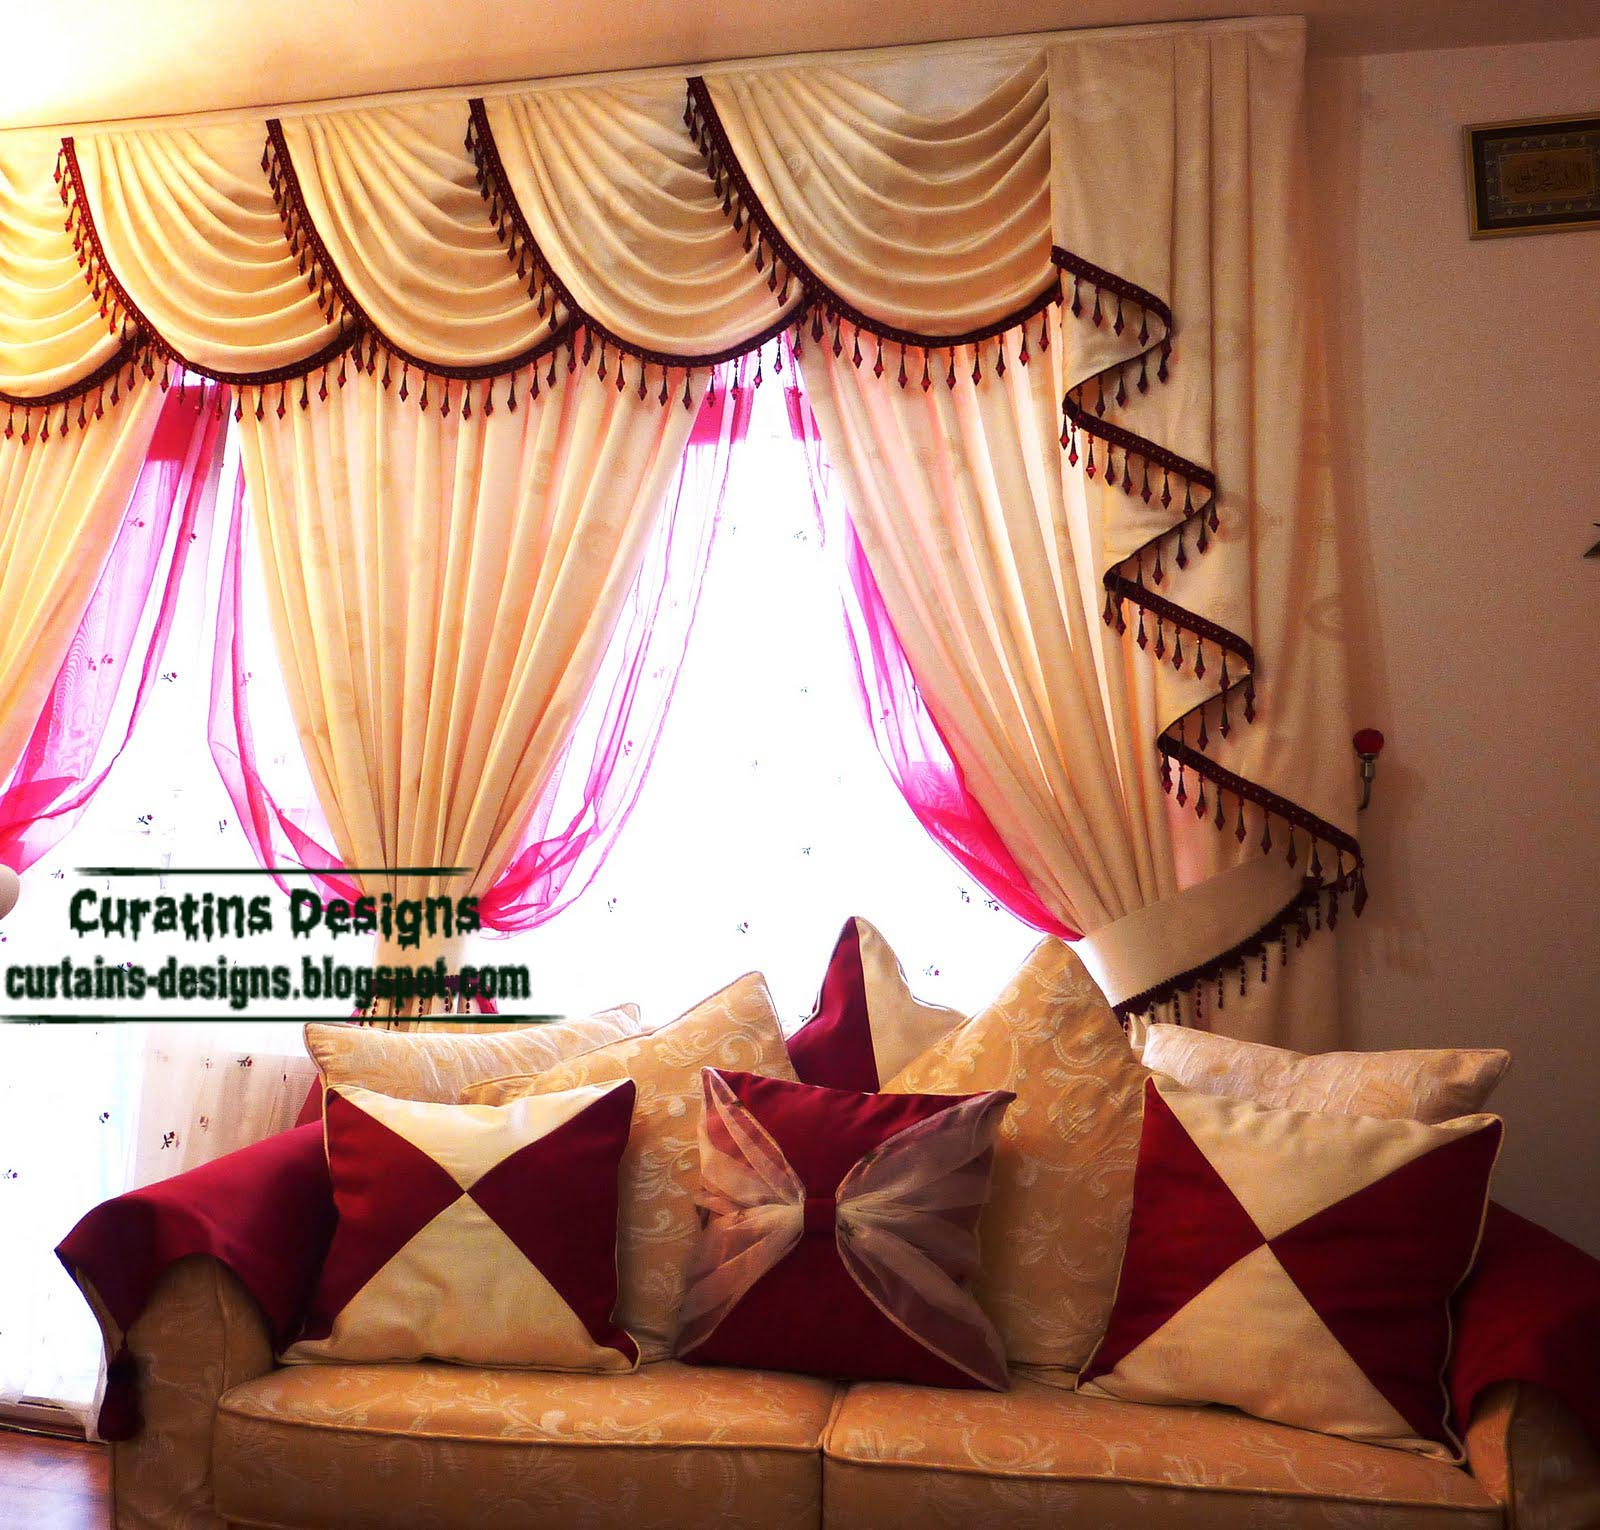 Home curtains designs for living room india home for Curtain designs living room